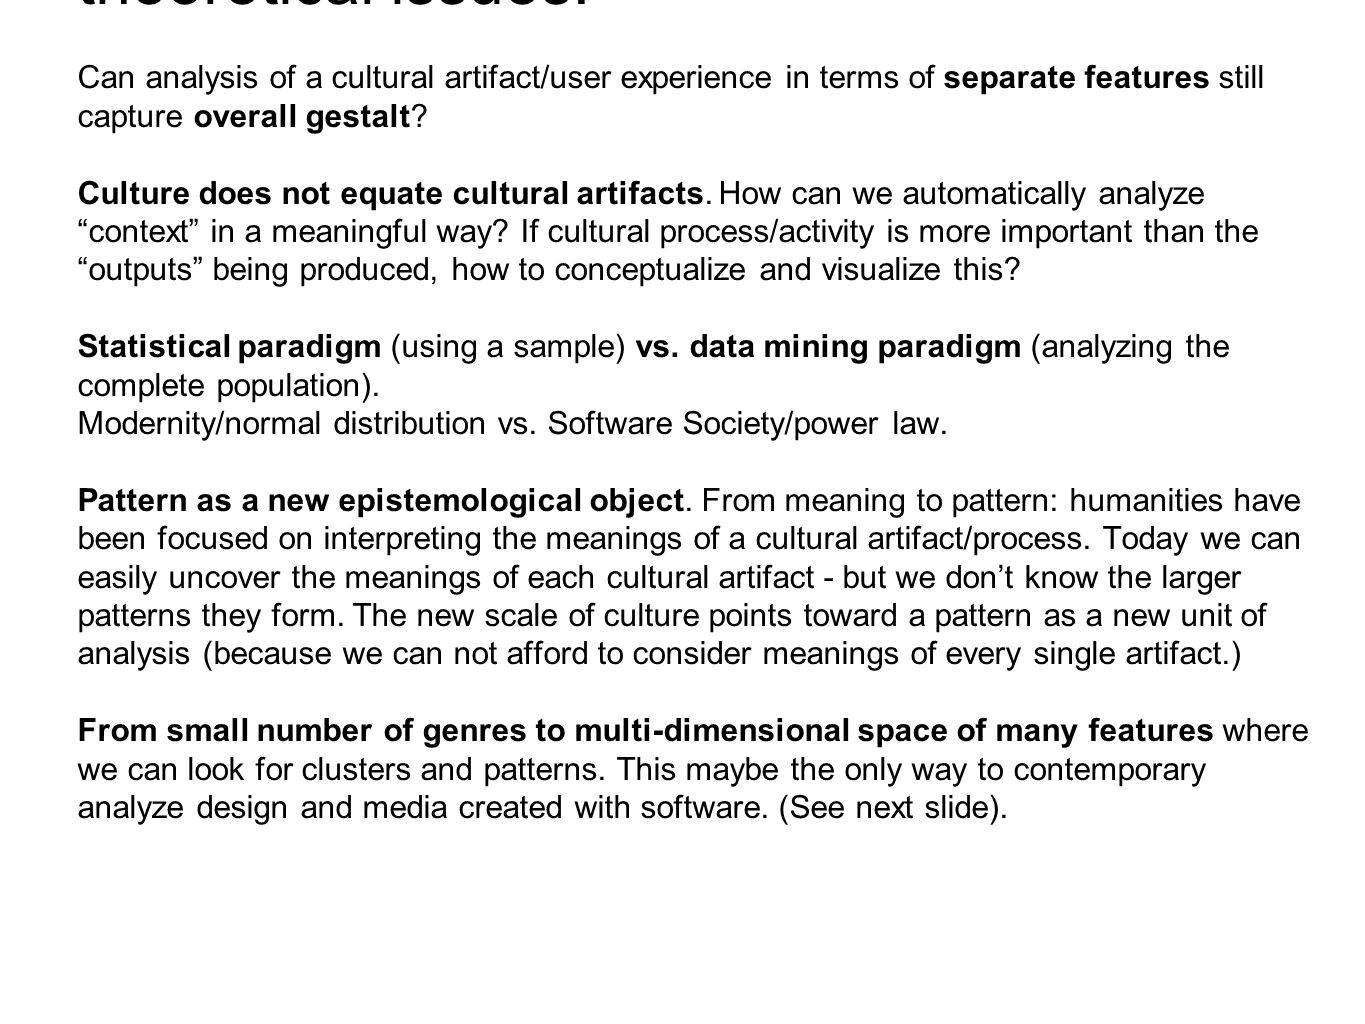 theoretical issues: Can analysis of a cultural artifact/user experience in terms of separate features still capture overall gestalt.